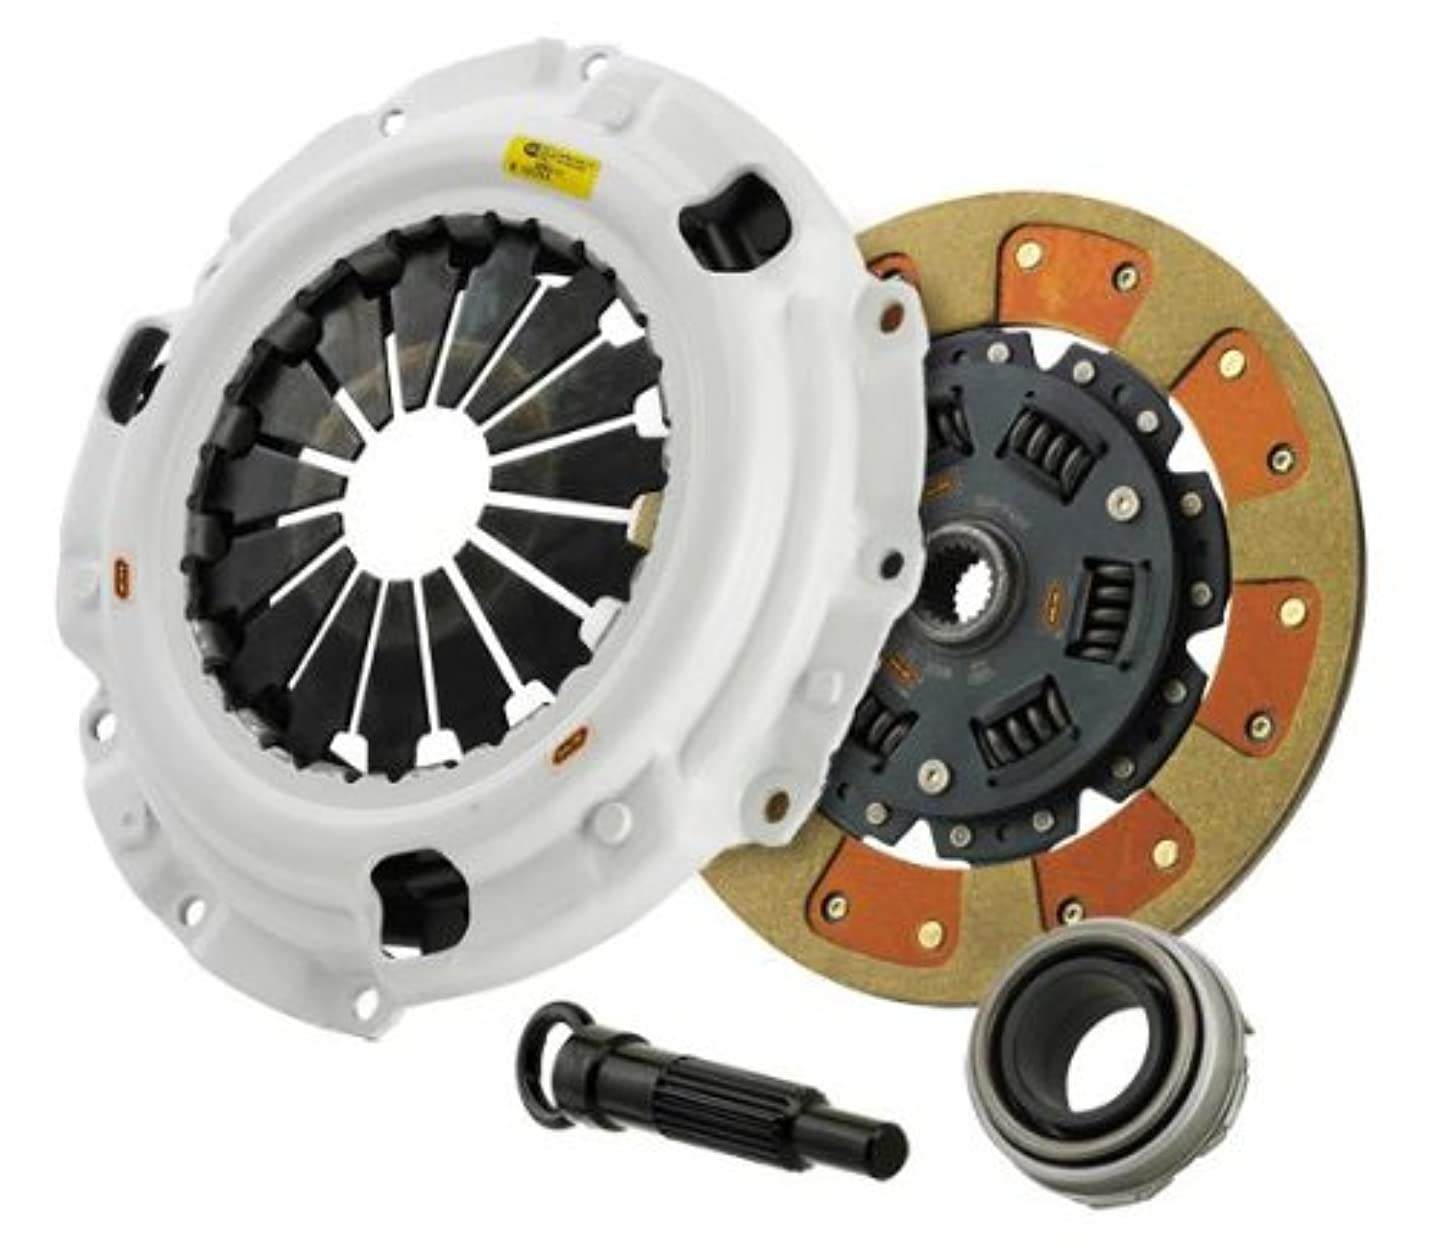 Clutch Masters 17375-HDTZ-RH Clutch Kit with Cover Disc and Bearing (10-11 VW GTI (Mk6) 2.0T TSI 6spd FX300)